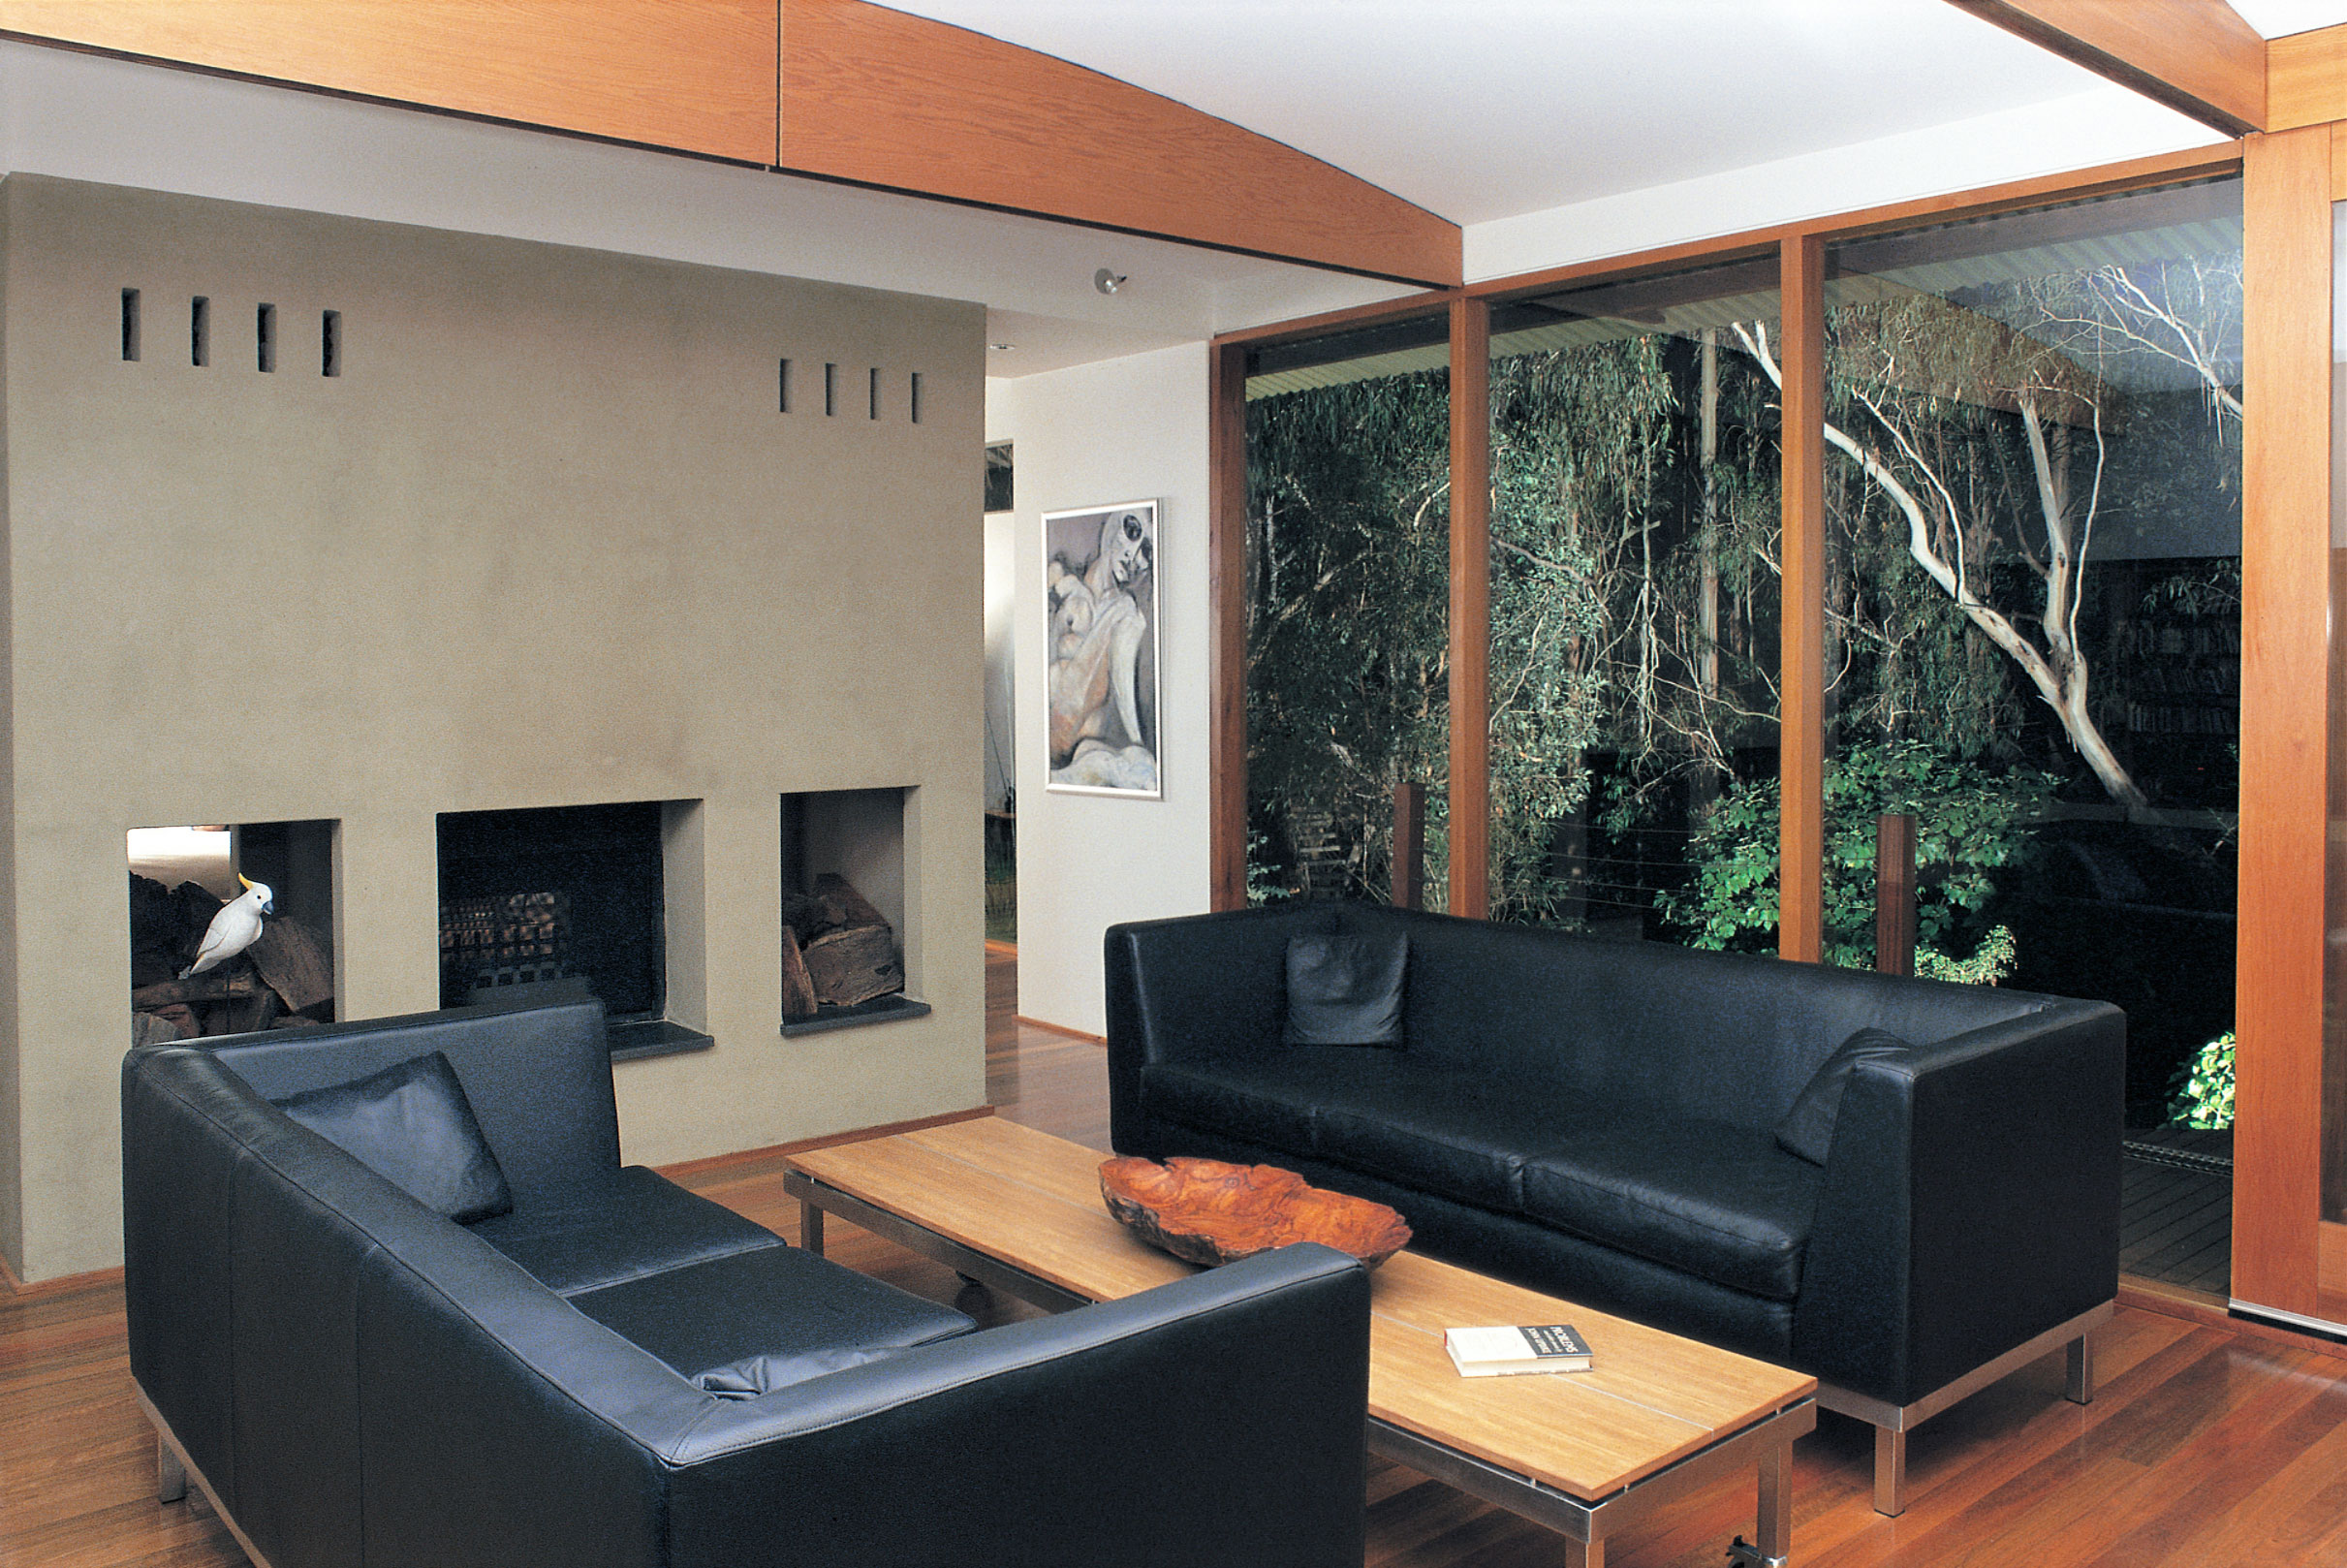 The natural environment provided the best canvas for art in the living room